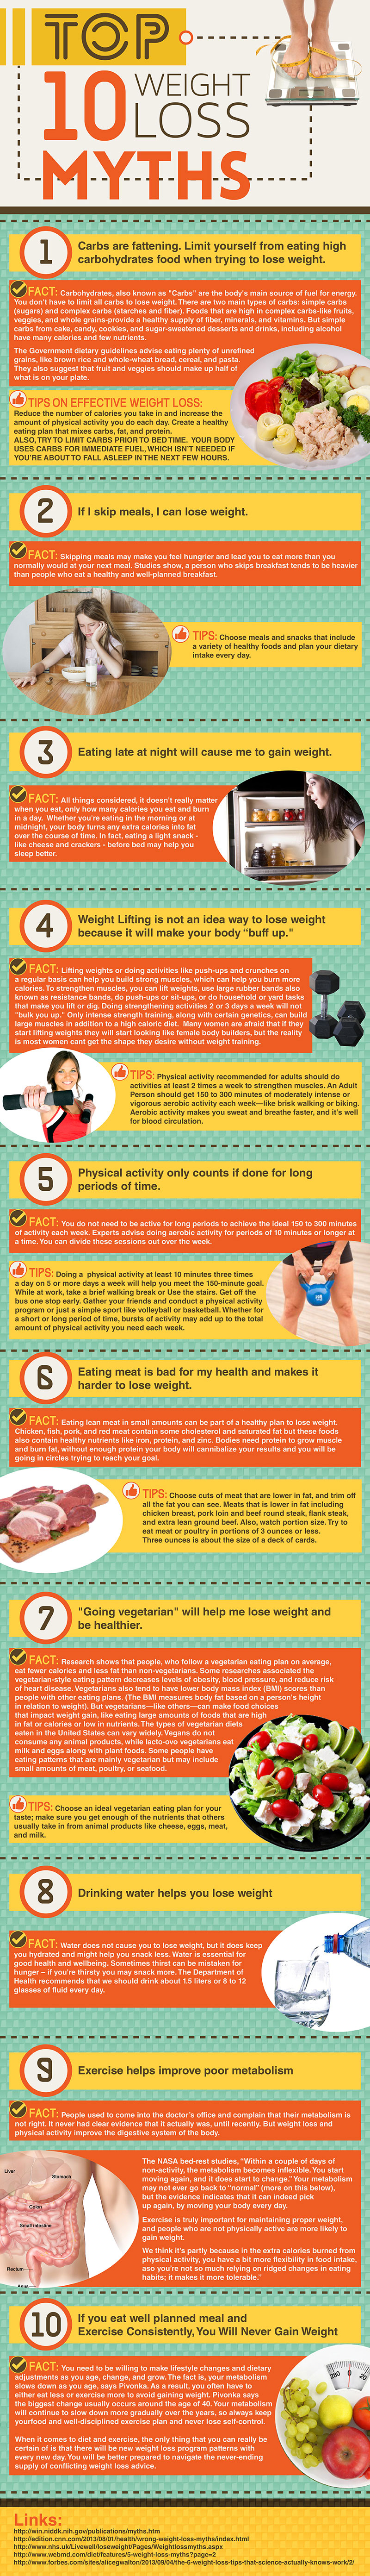 10 weight loss myths infographic